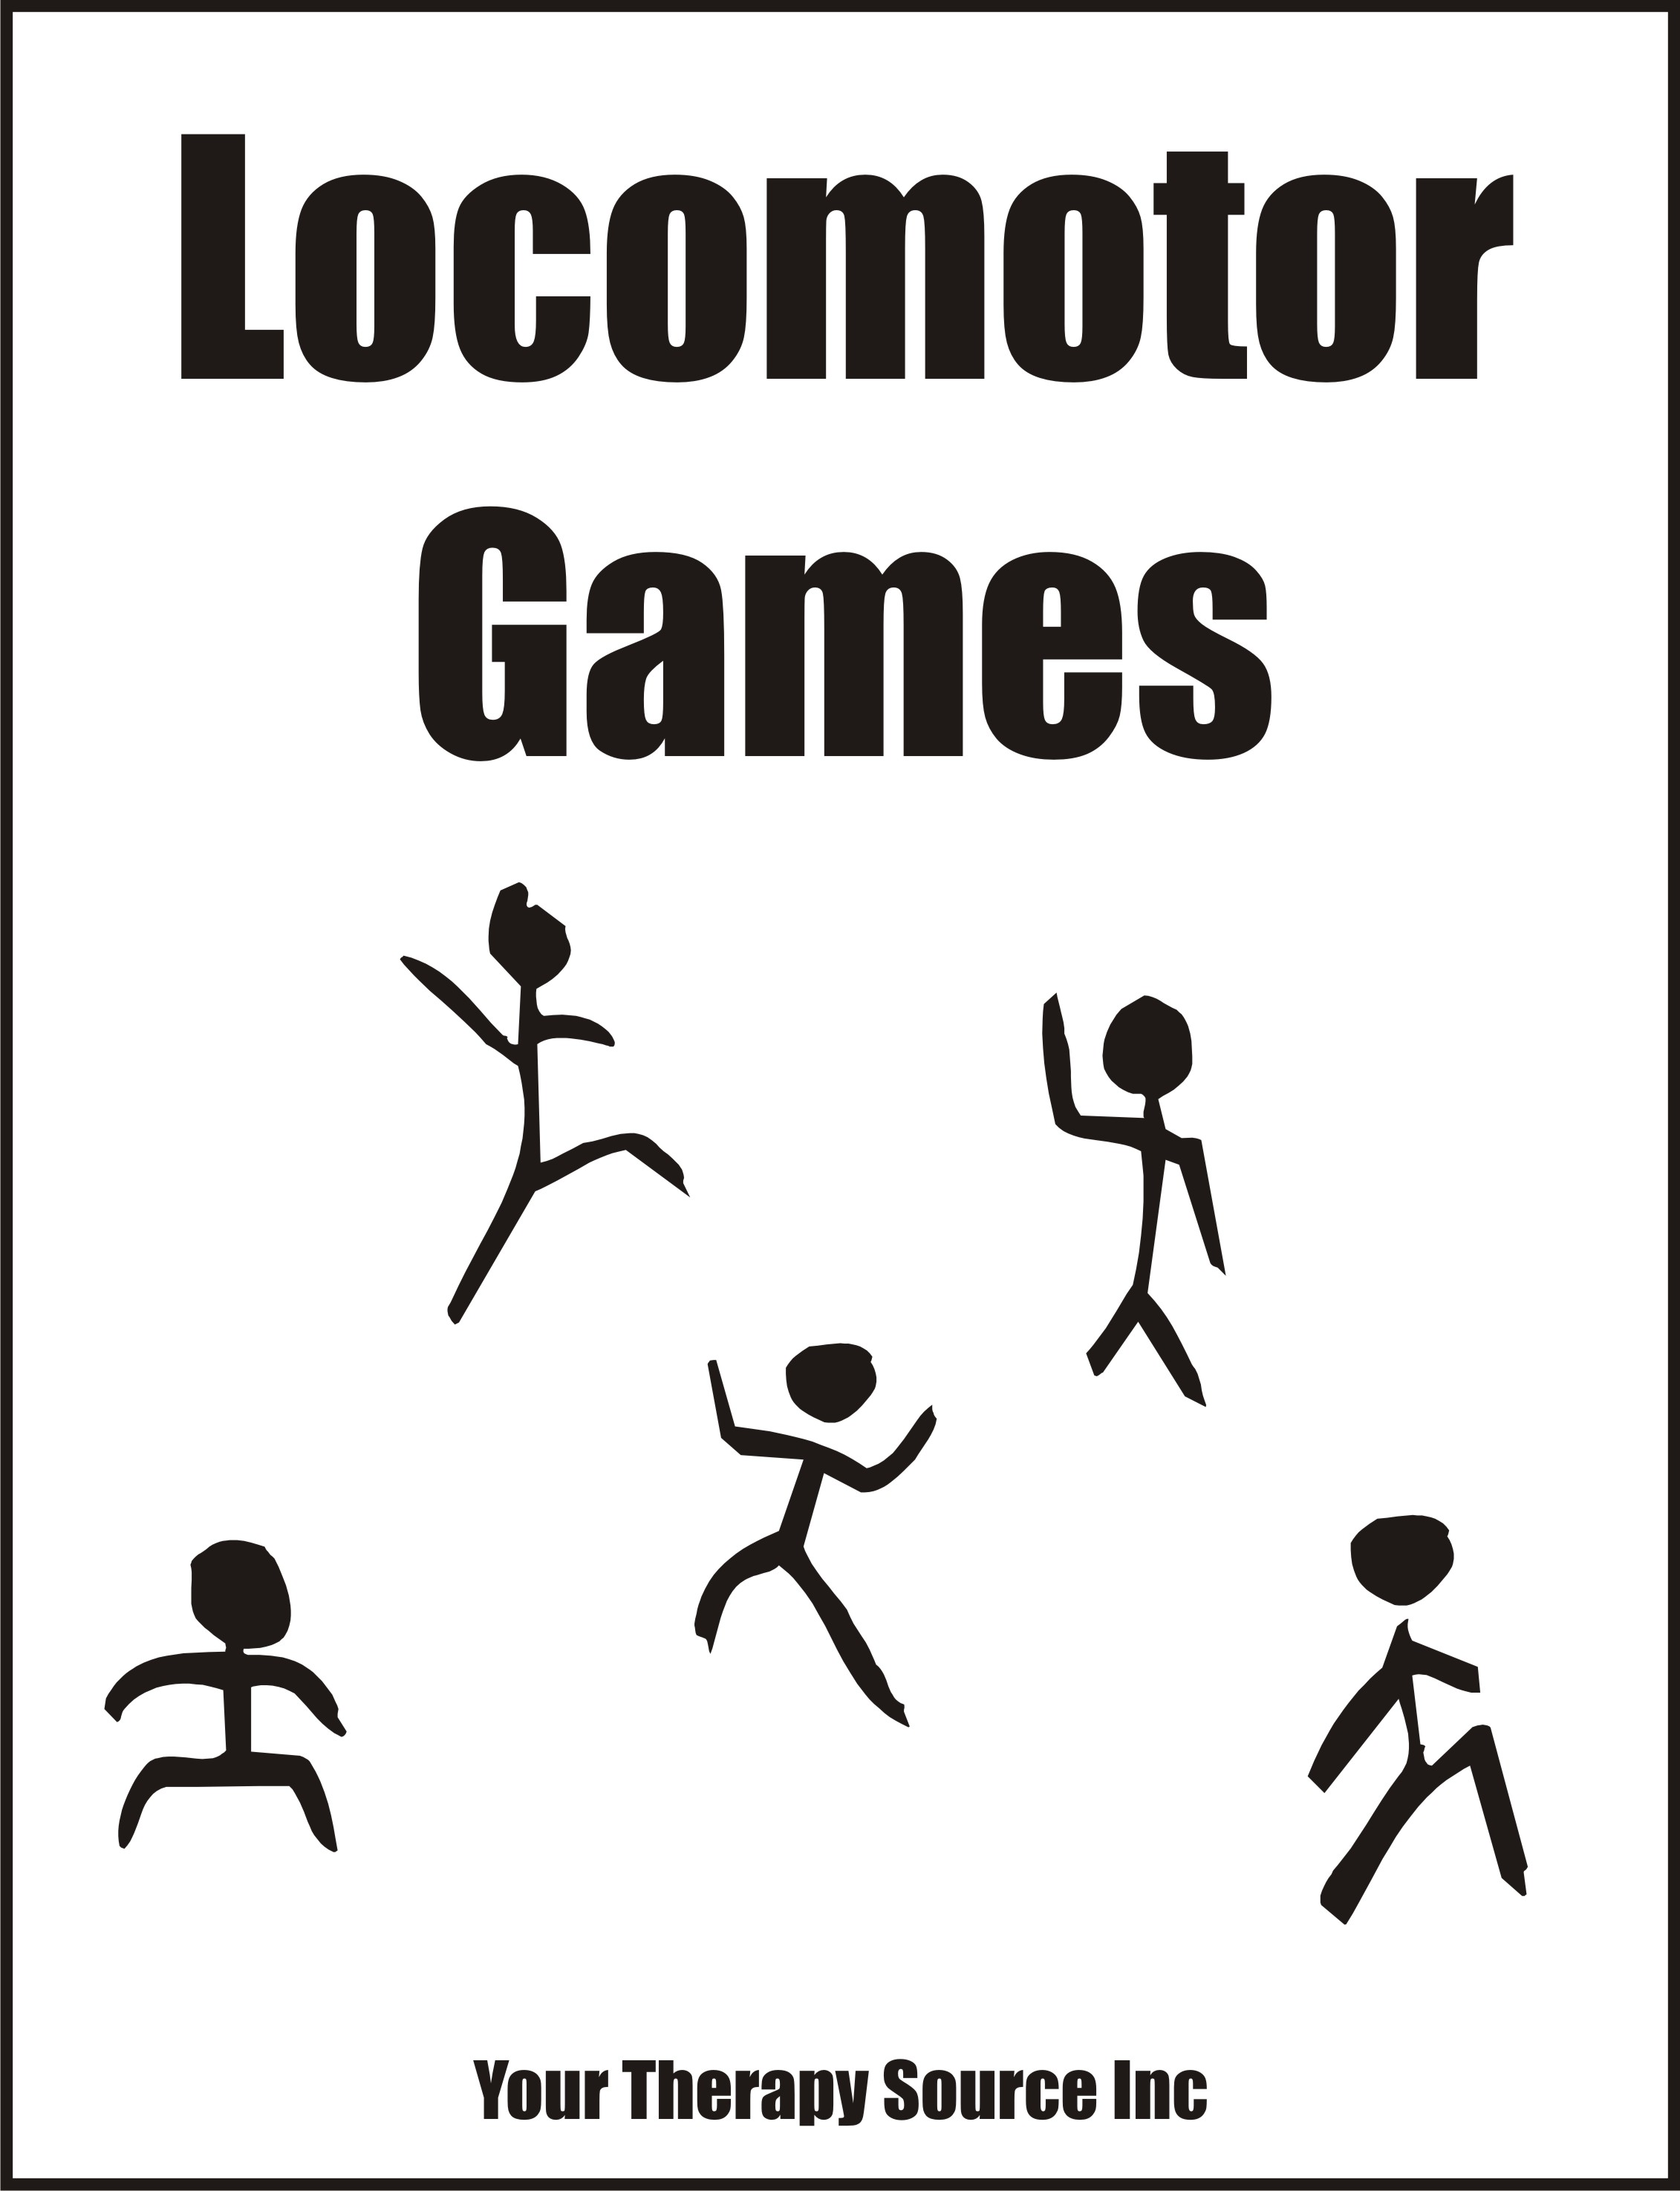 Locomotor Games - Your Therapy Source